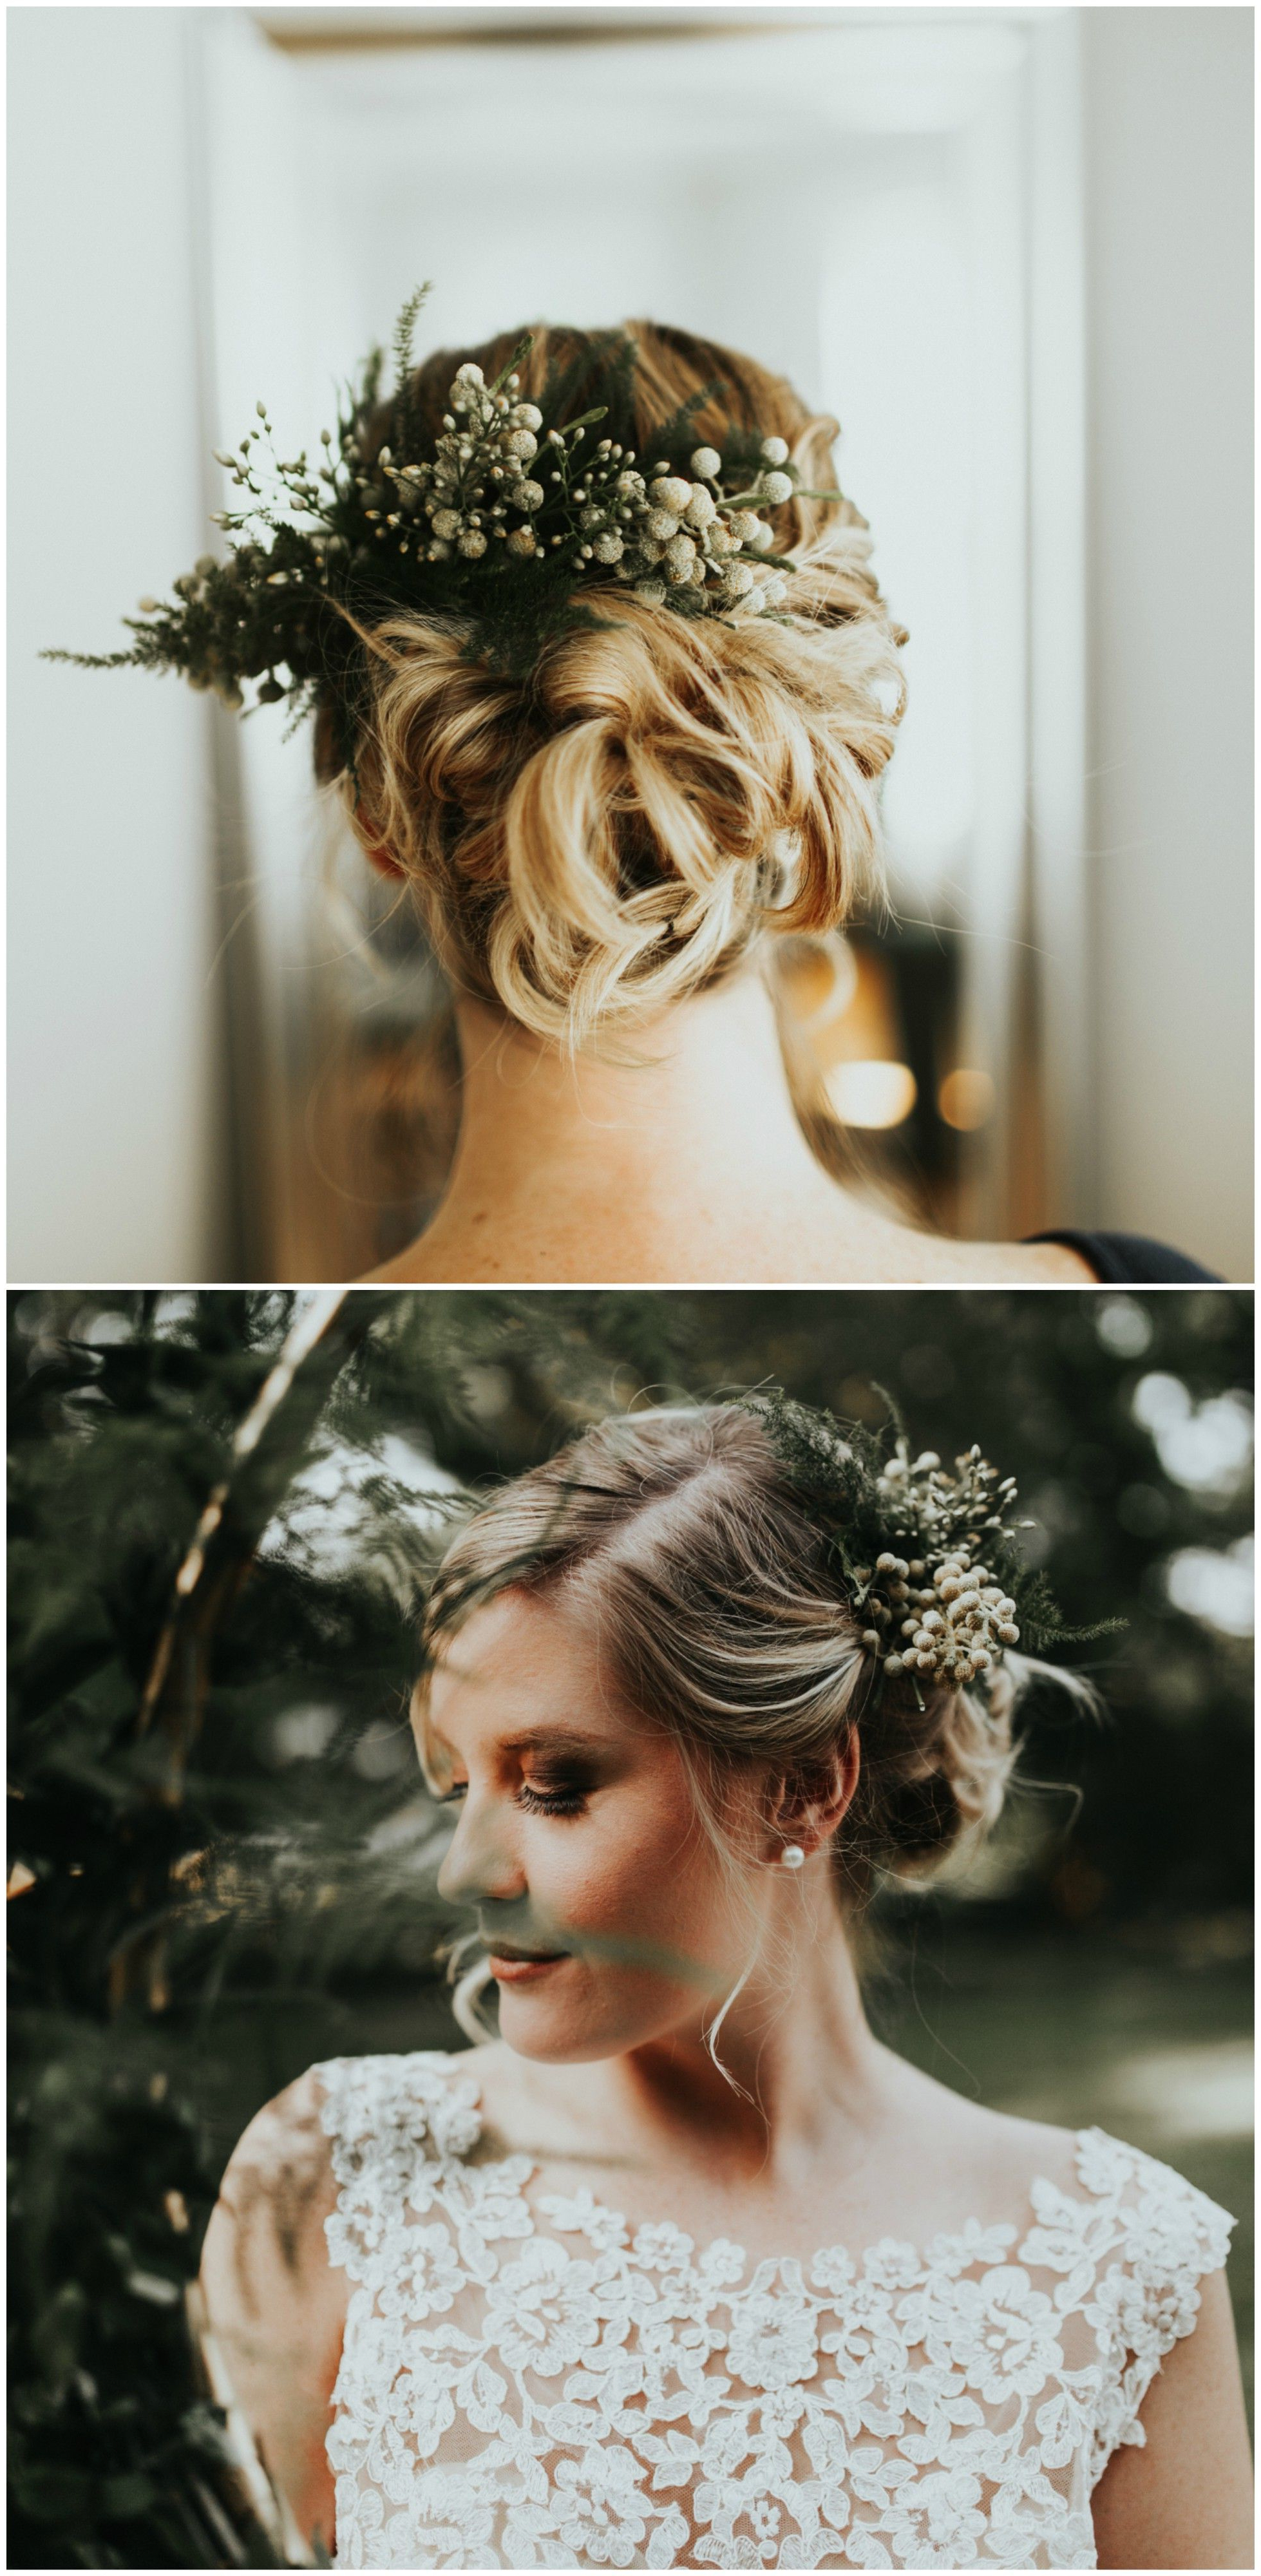 Well Known Curled Bridal Hairstyles With Tendrils With The Smarter Way To Wed (View 9 of 20)